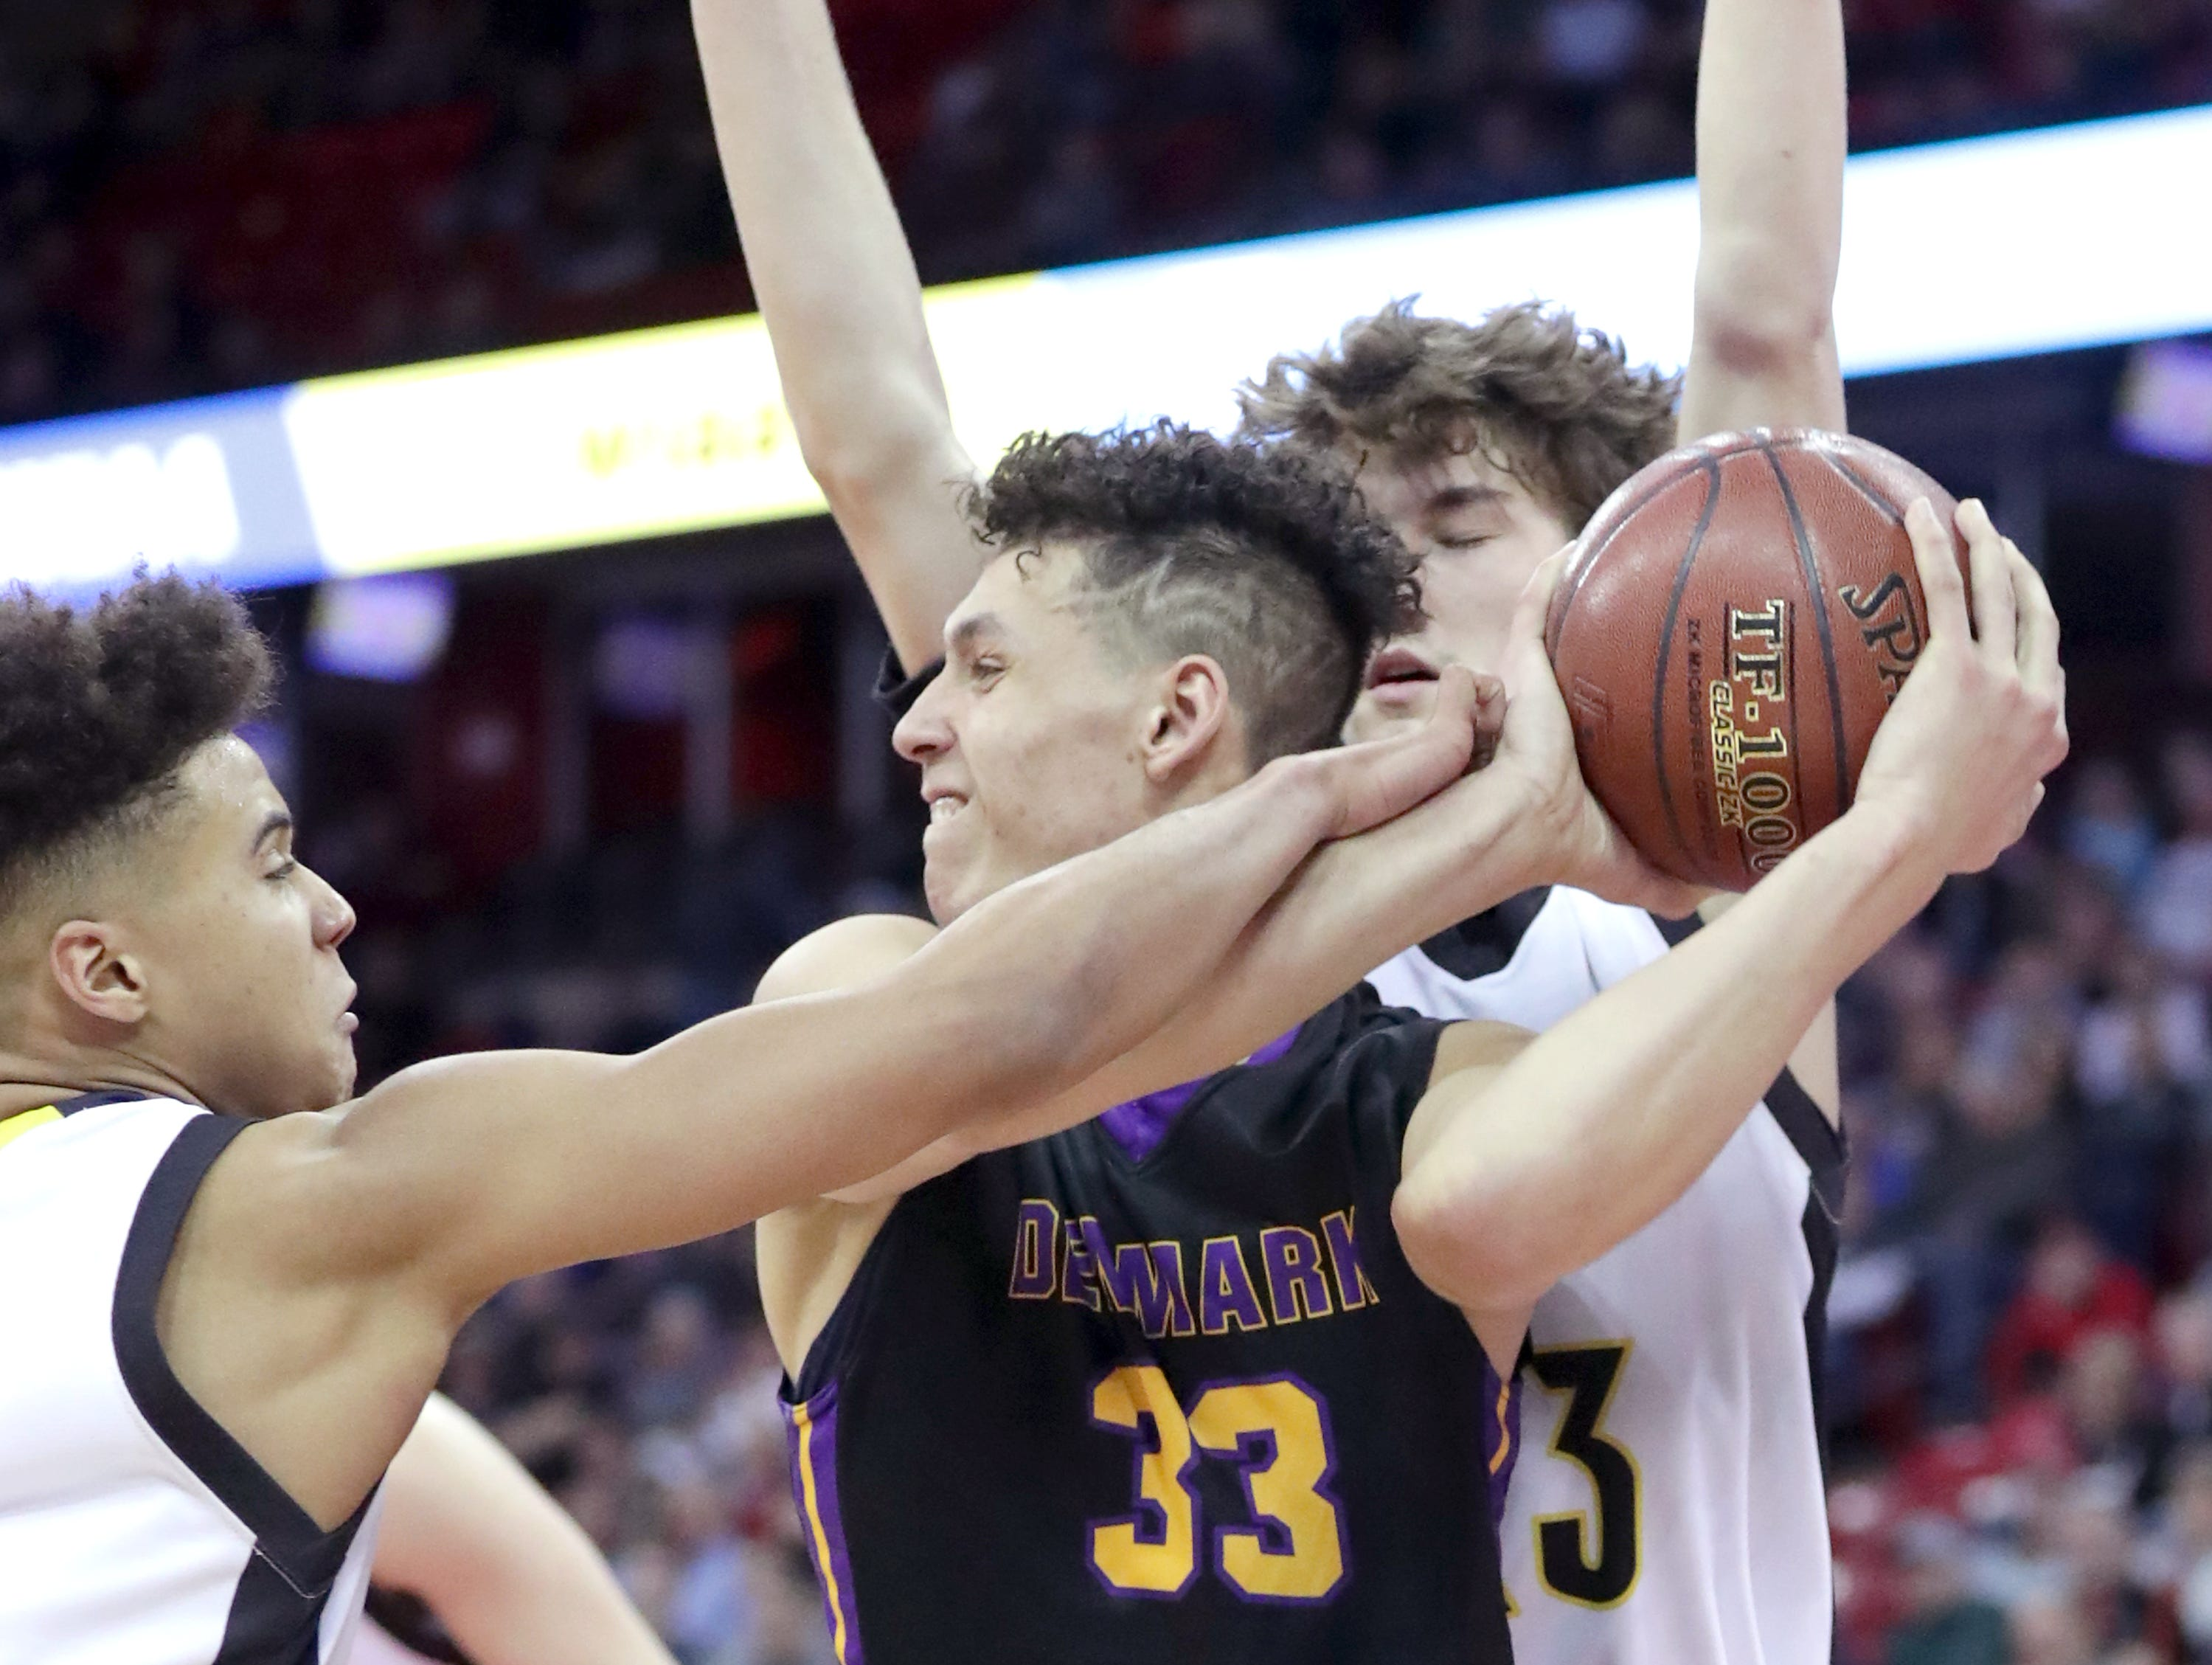 Denmark High School's #33 Patrick Suemnick against Waupun High School's #3 Quintin Winterfeldt, left, and #23 Reece Homan during their WIAA Division 3 boys basketball state semifinal on Thursday, March 14, 2019, at the KohlCenter in Madison, Wis.  Waupun defeated Denmark 60 to 43.